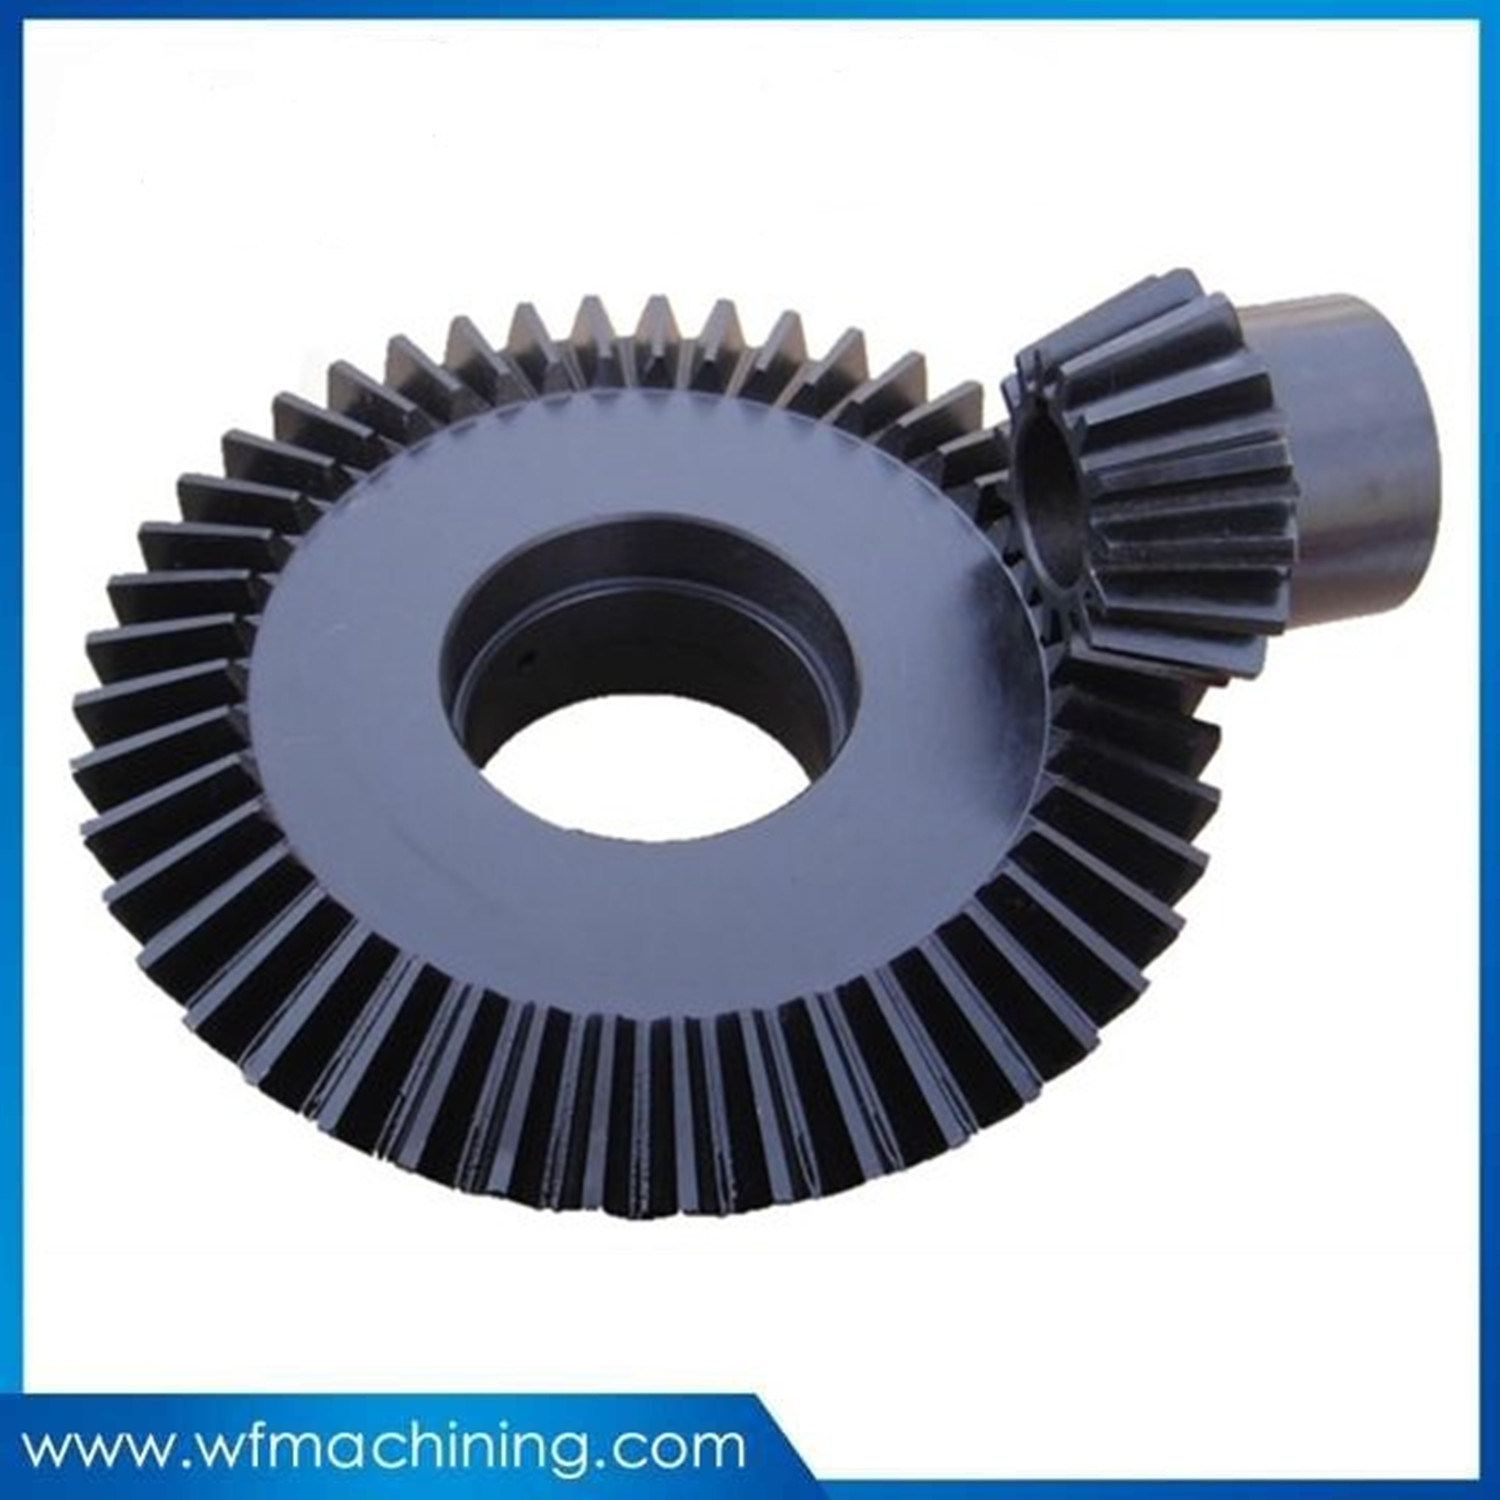 [Hot Item] OEM Gear 45 Degree Precision Helical Pinion Planetary Gear